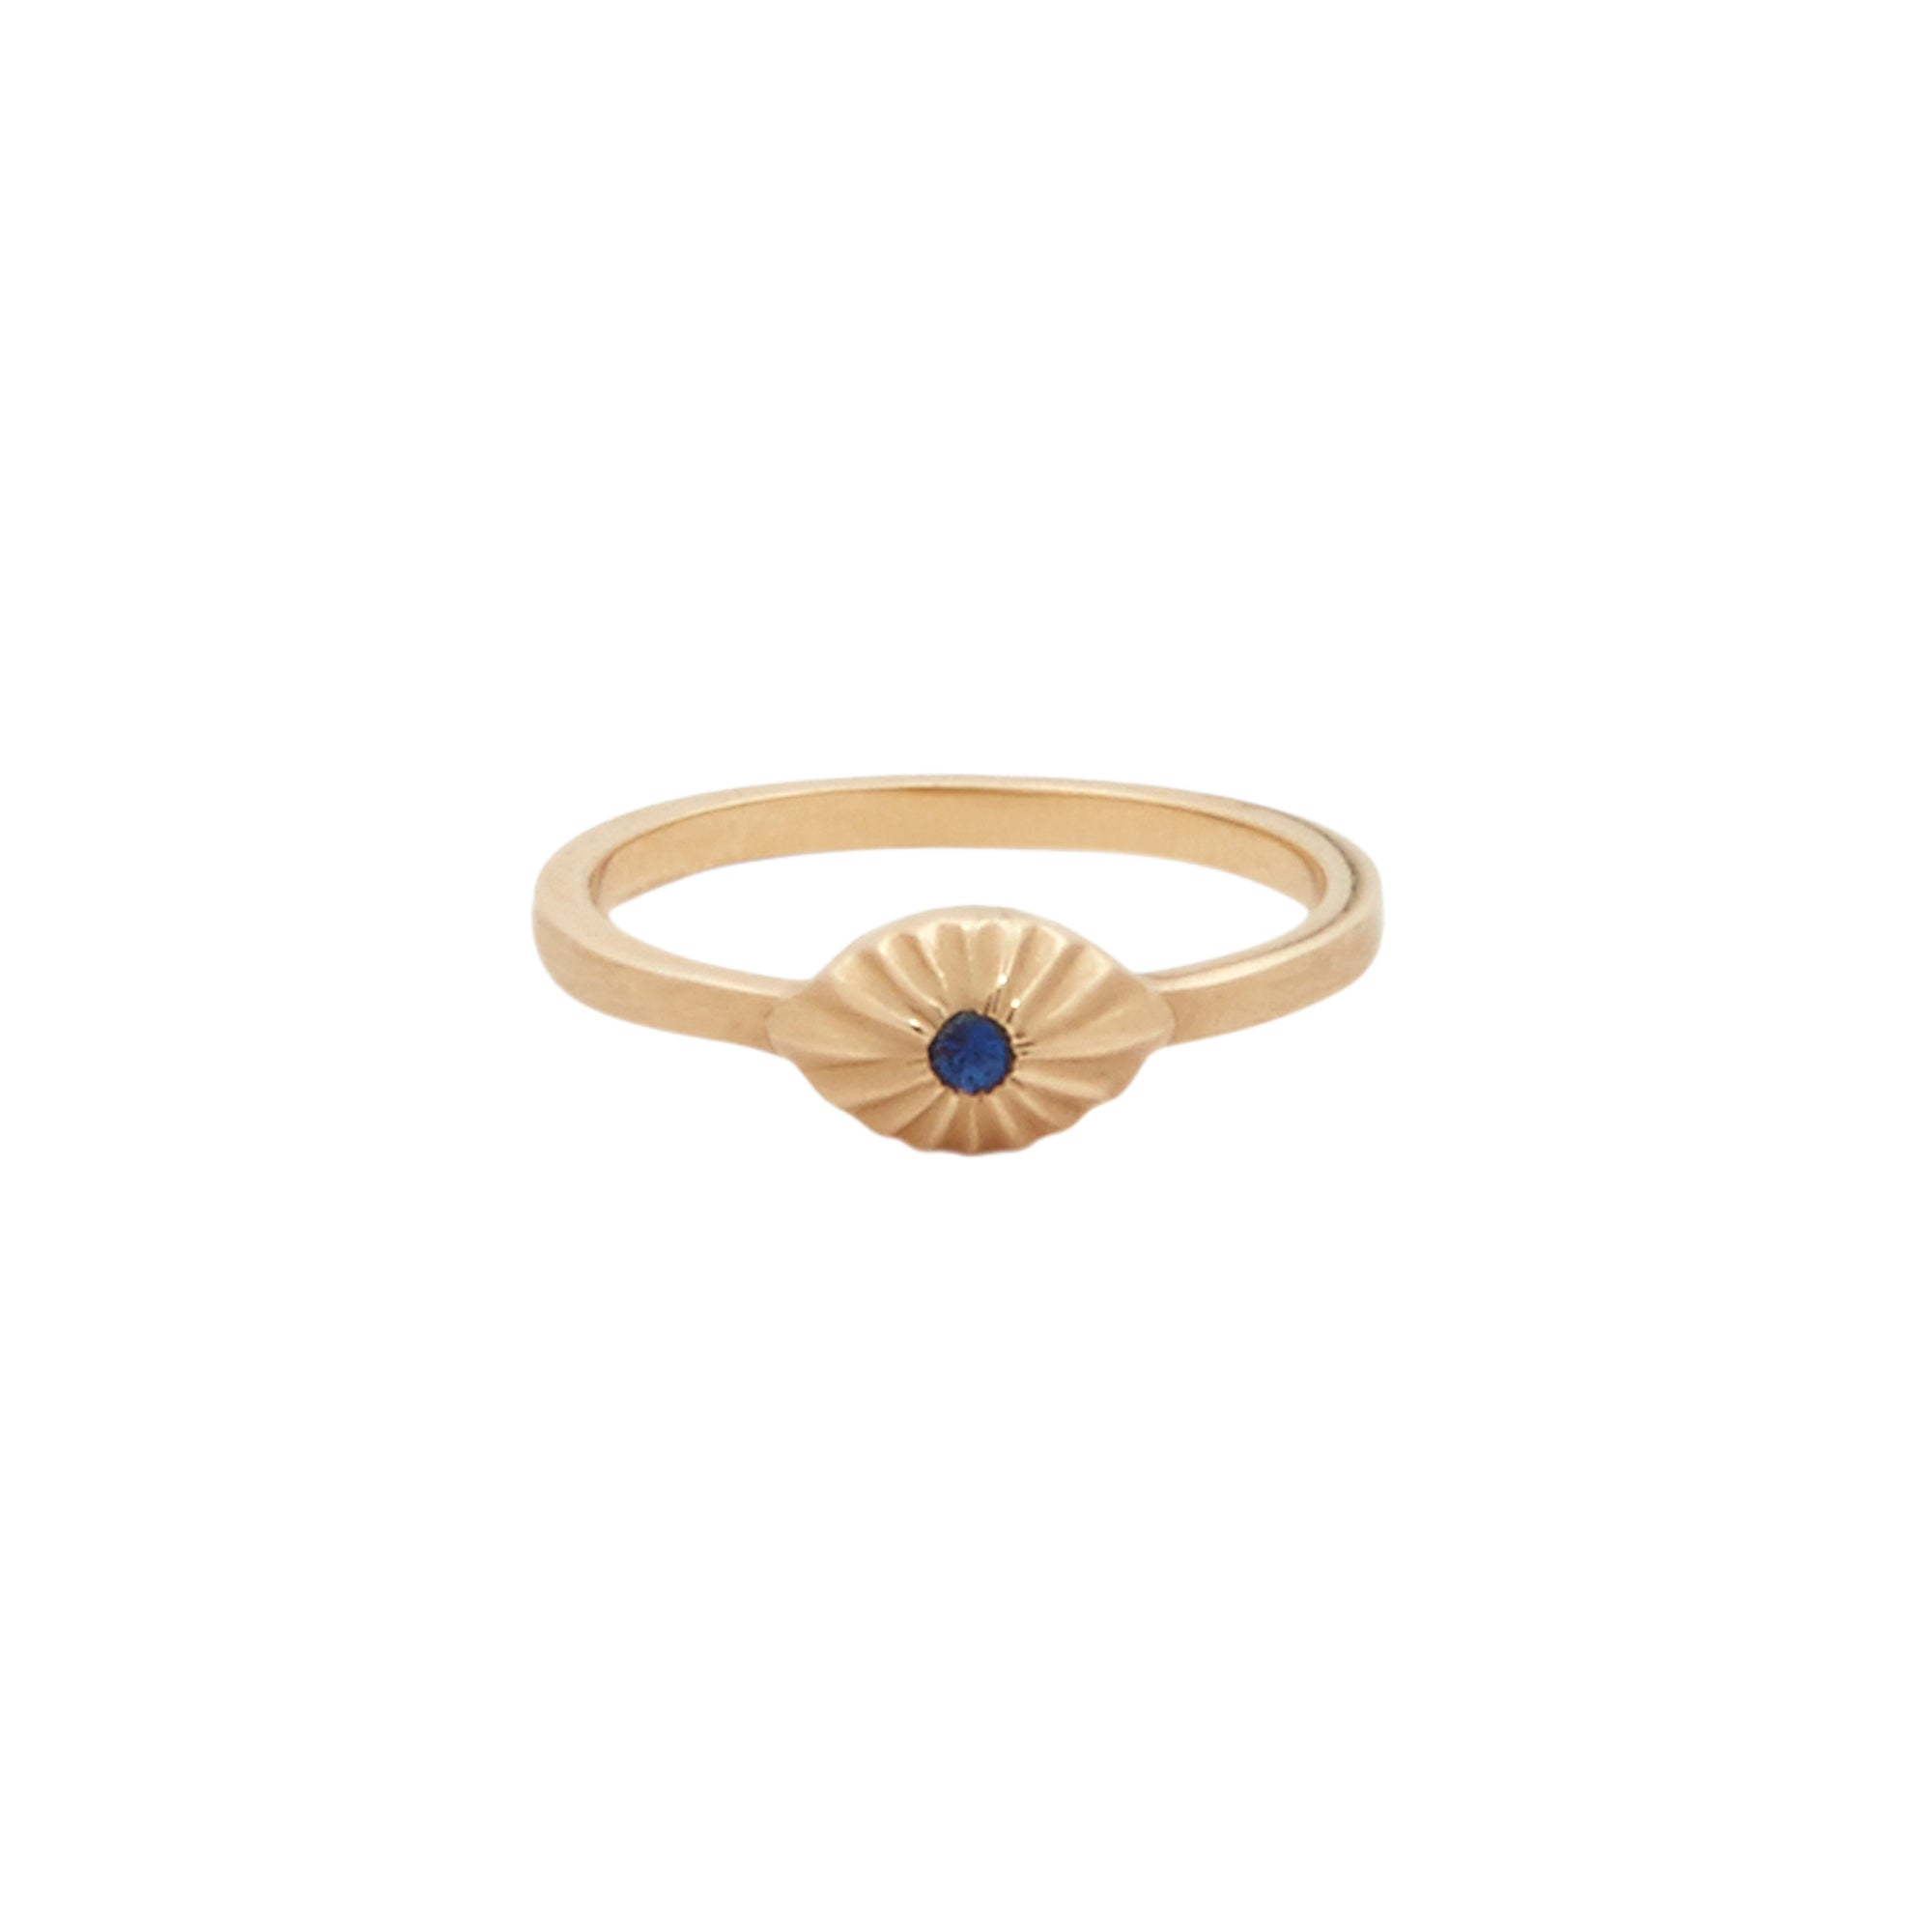 Gold & Sapphire Bright Eye Ring by Michelle Fantaci for Broken English Jewelry